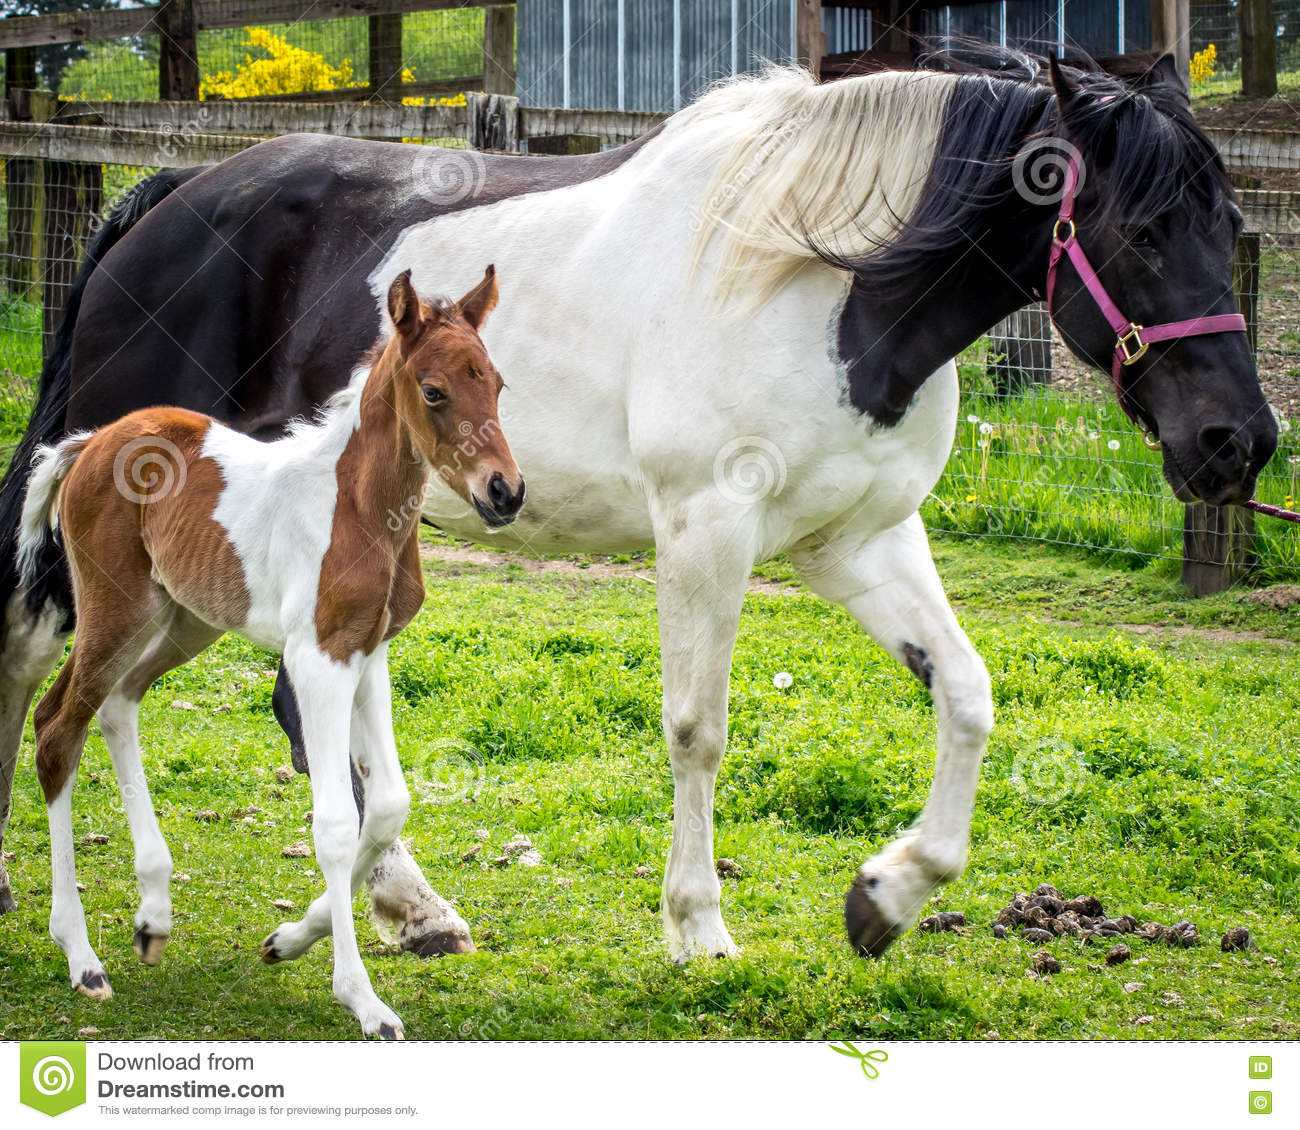 735 Mom Baby Horse Photos Free Royalty Free Stock Photos From Dreamstime